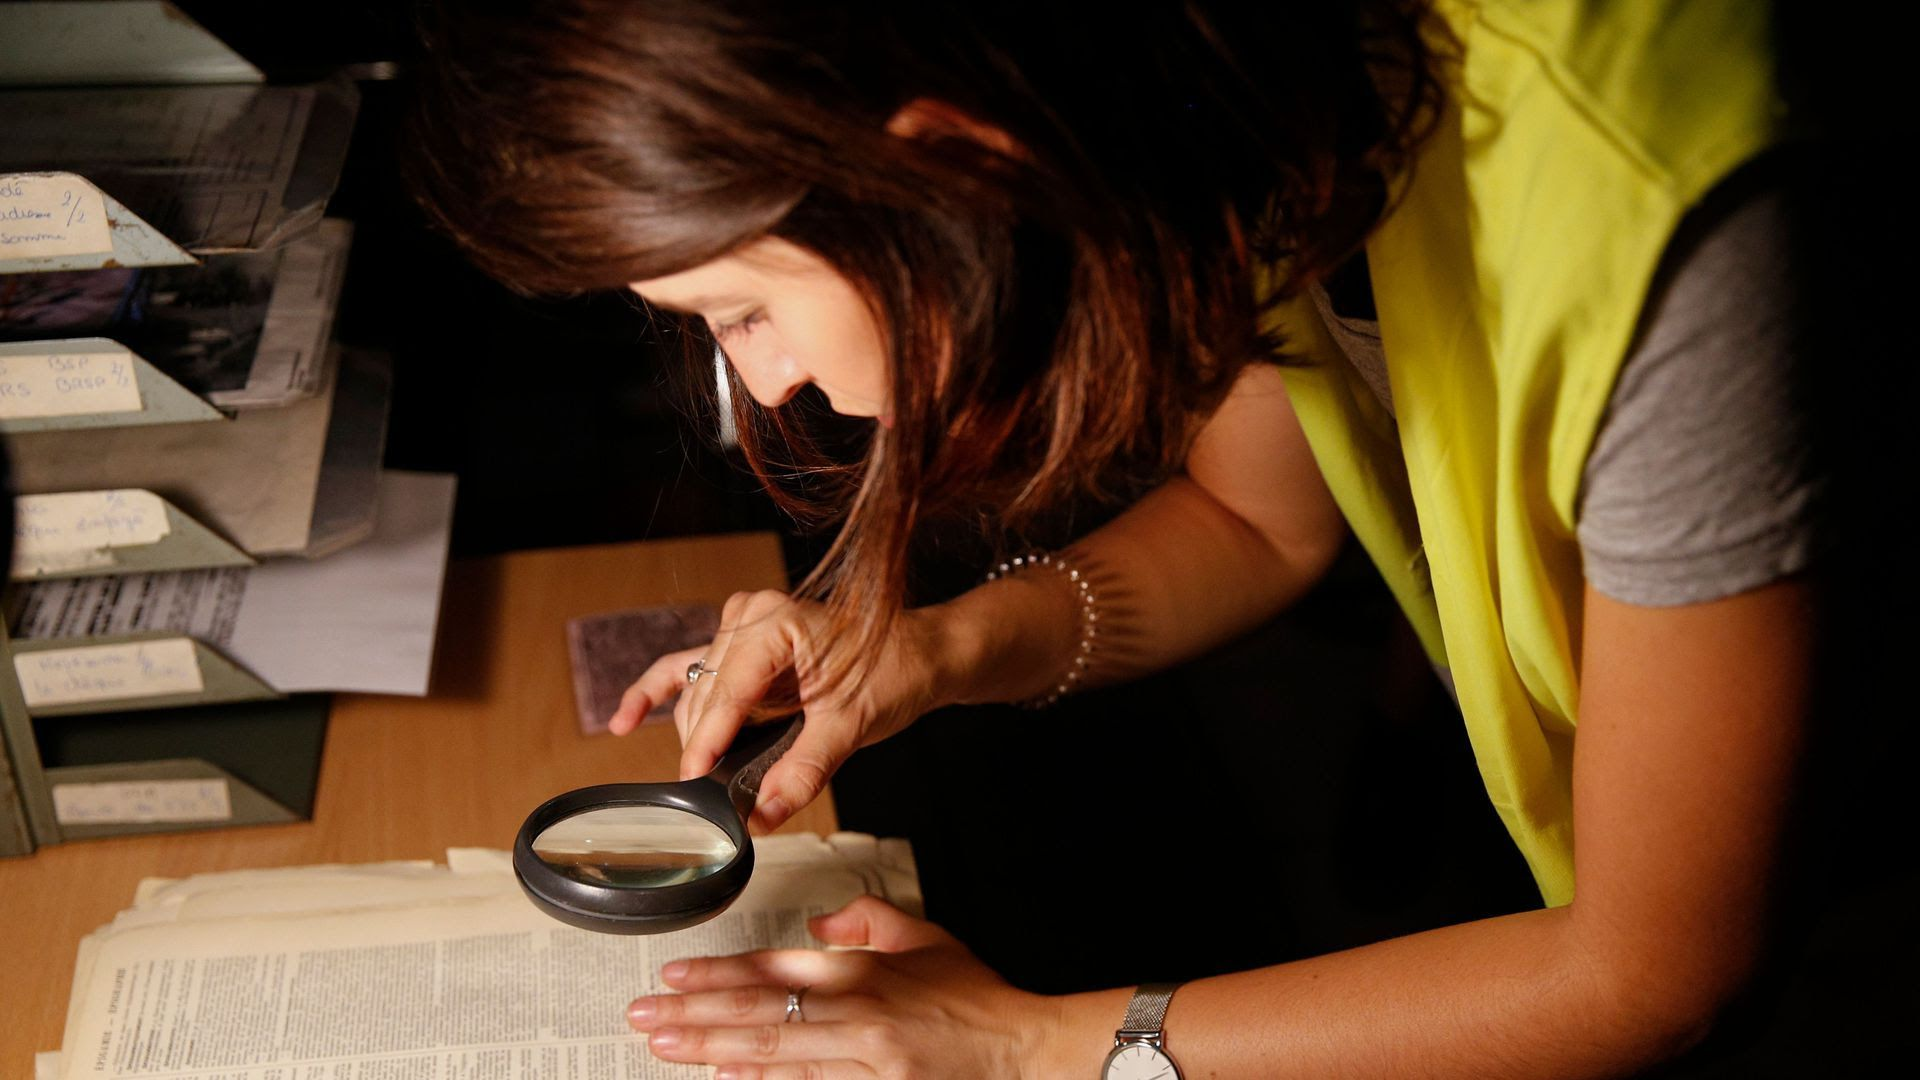 A woman searches for clues at an escape room.